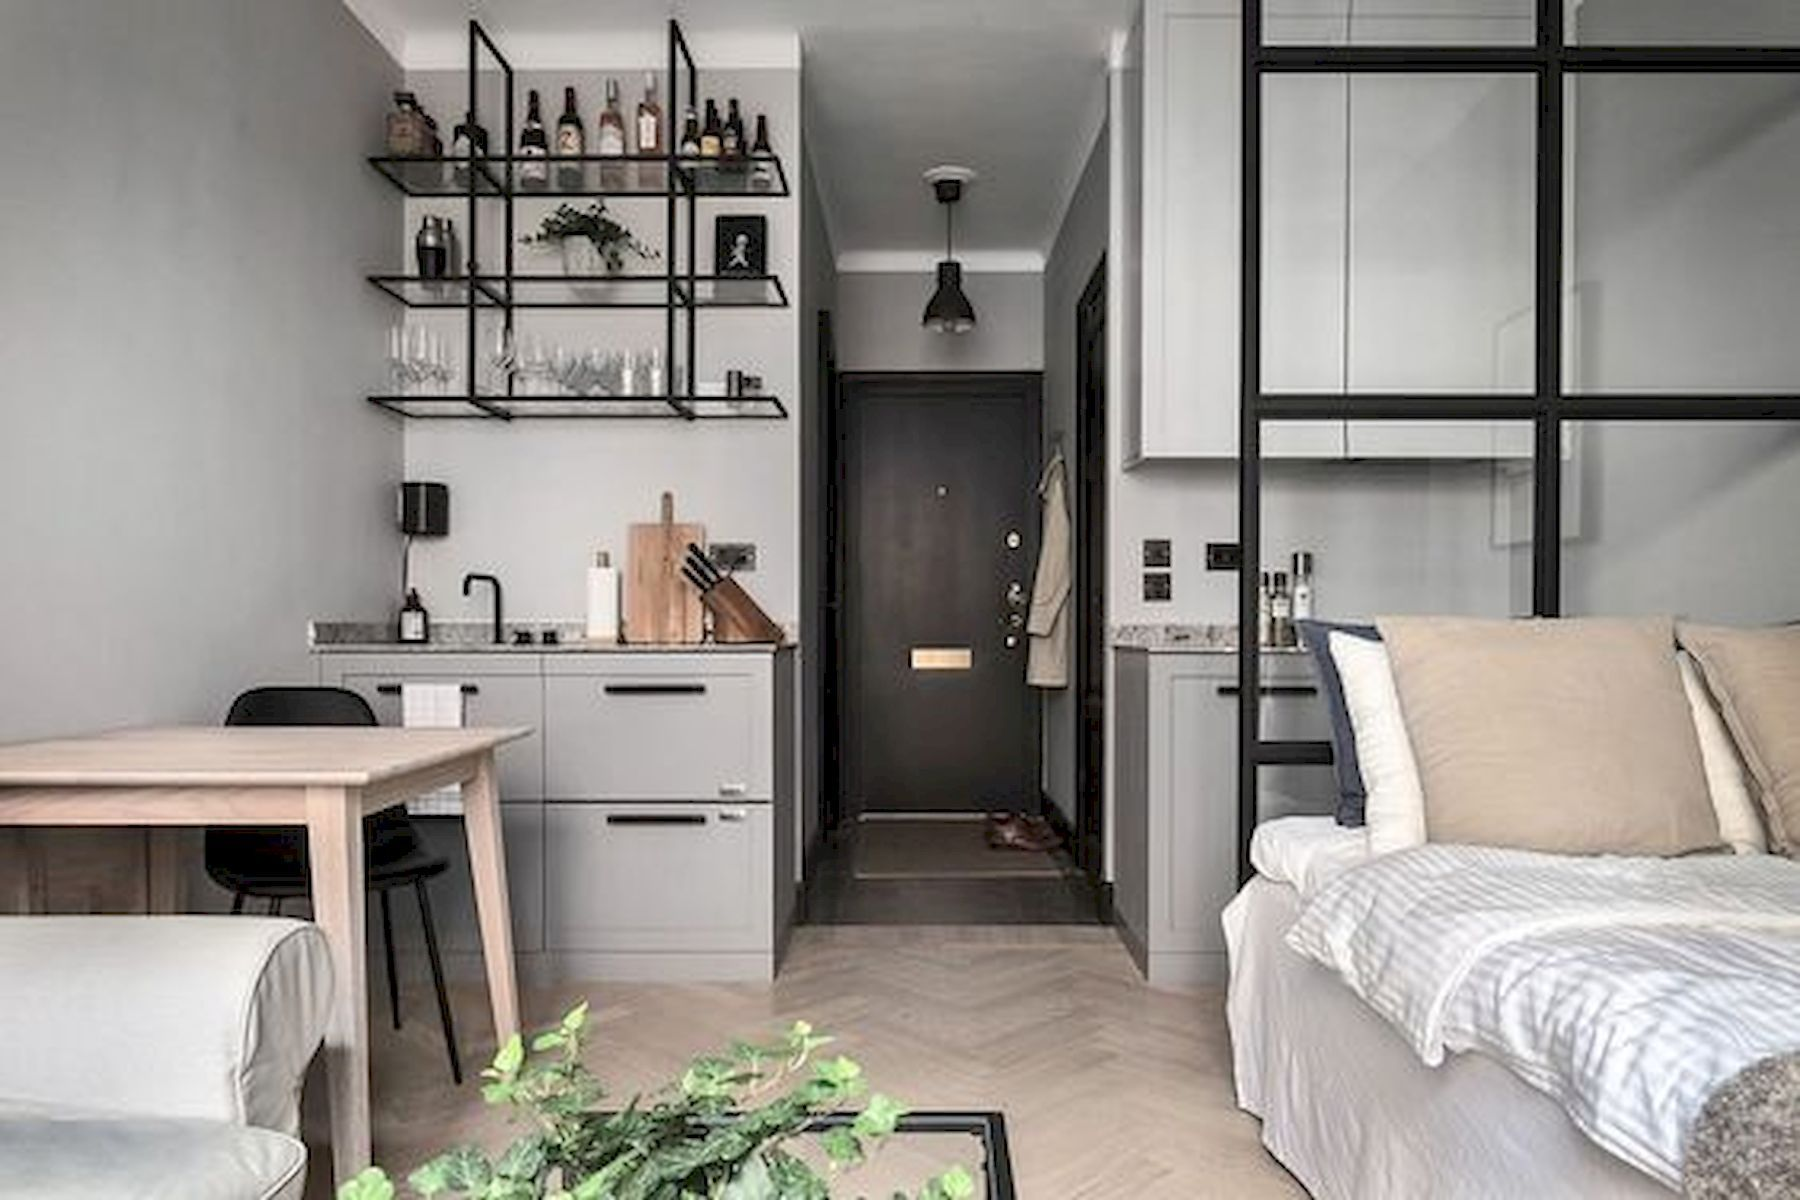 Adorable 15+ Stunning Minimalist Studio Apartment Small Spaces